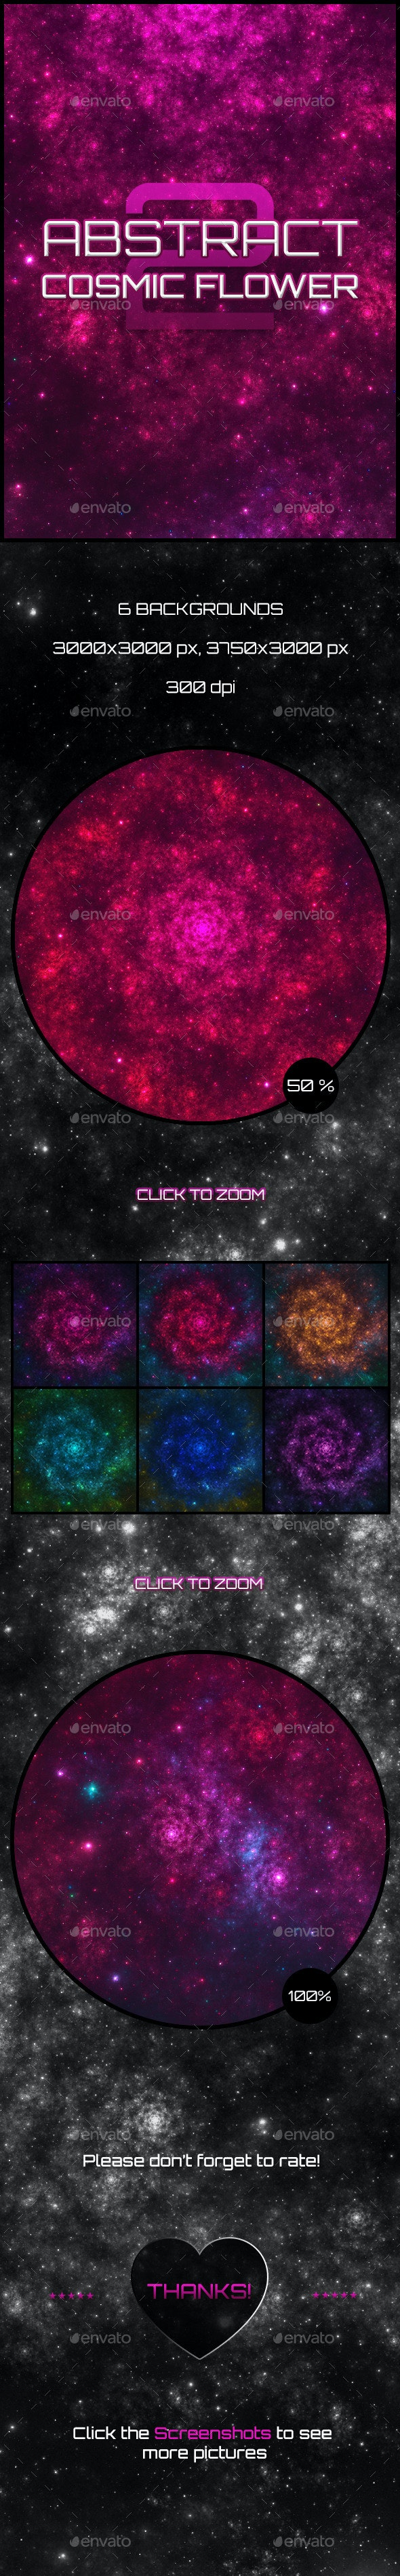 Abstract Cosmic Flower Backgrounds 2 - Abstract Backgrounds